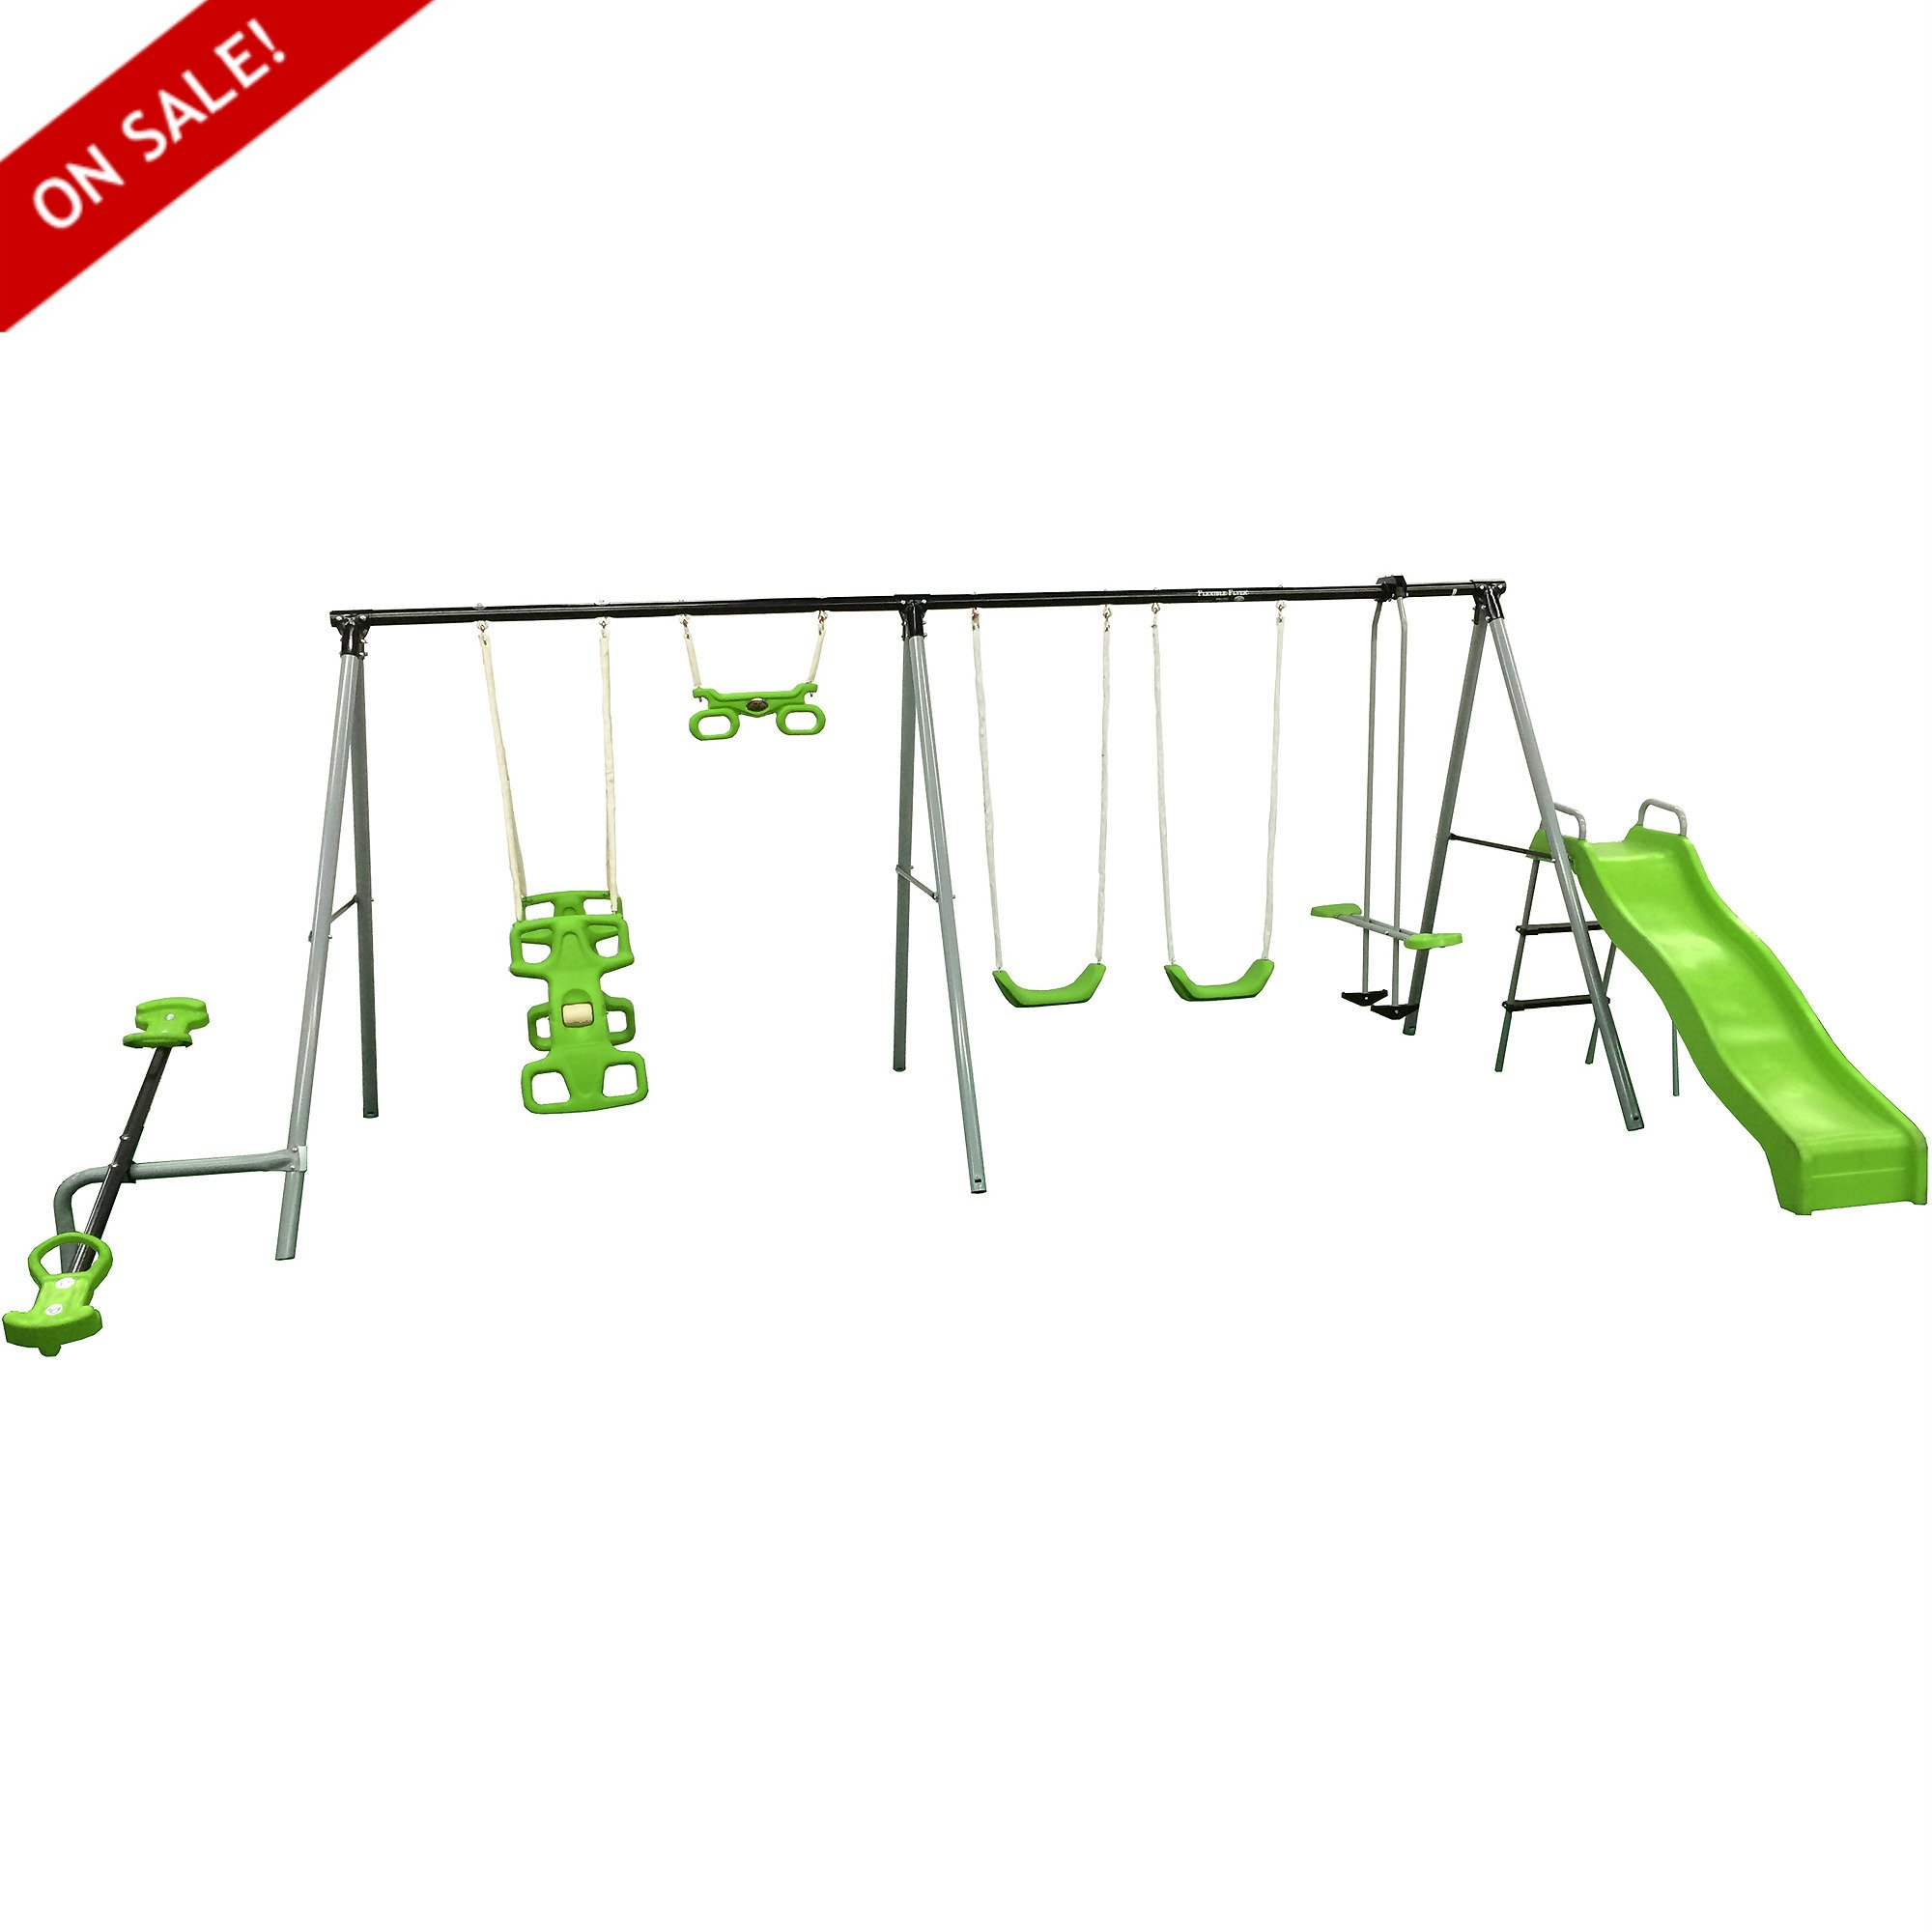 Metal Swing Set With Slide For Backyard Flexible Flyer Kids Outdoor Durable Playcenter For Physical Activity And Exercise Girld Boys Outdoor Games - Skroutz